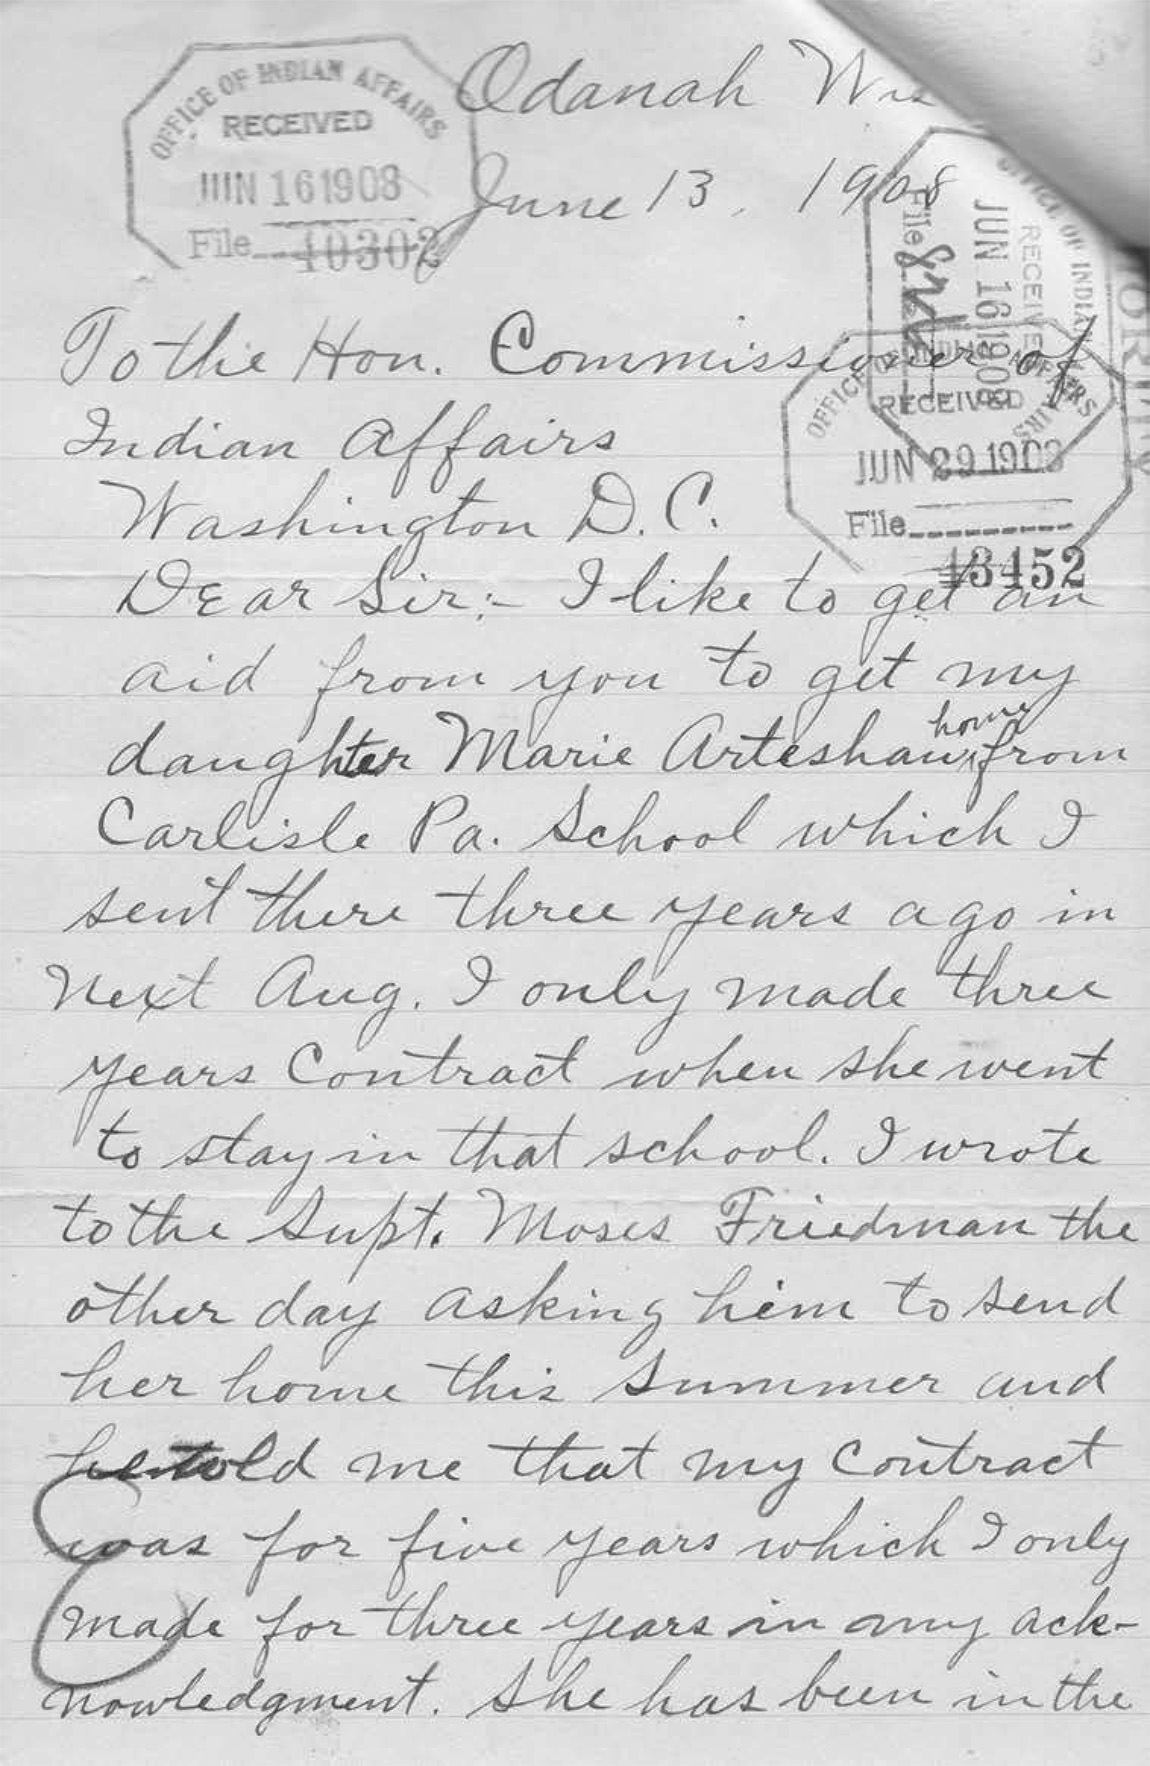 A letter in cursive written by a mother named Theresa Green from the Chippewa Nation to the commissioner of Indian Affairs asking that her daughter be sent home from the Carlisle School since her the 3-year contract there has passed.